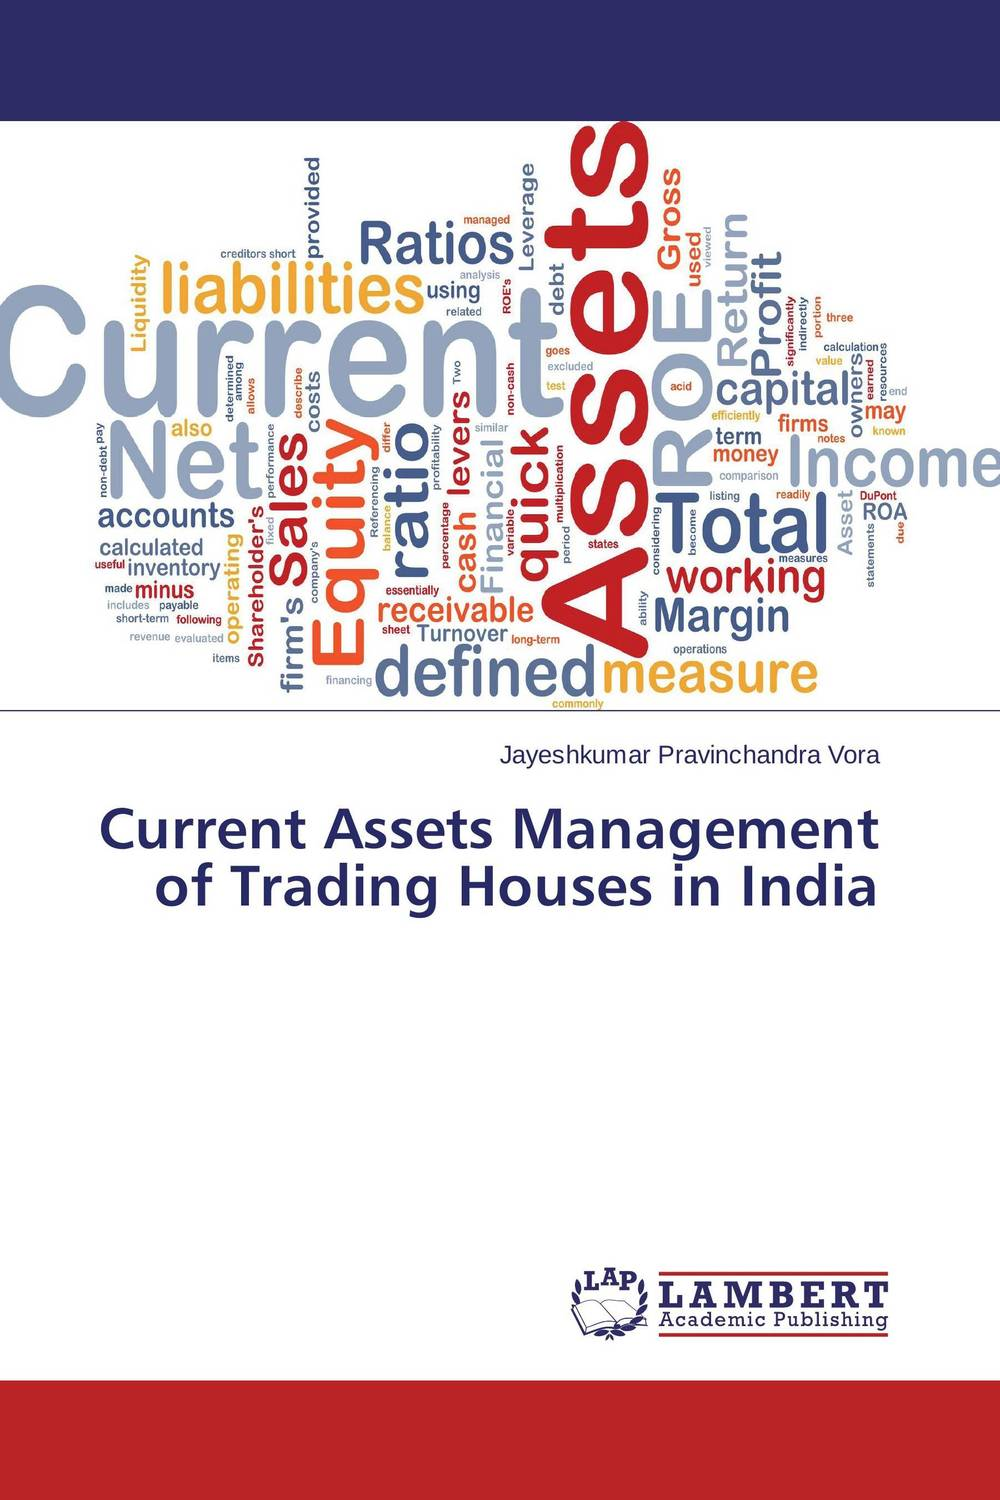 Current Assets Management of Trading Houses in India